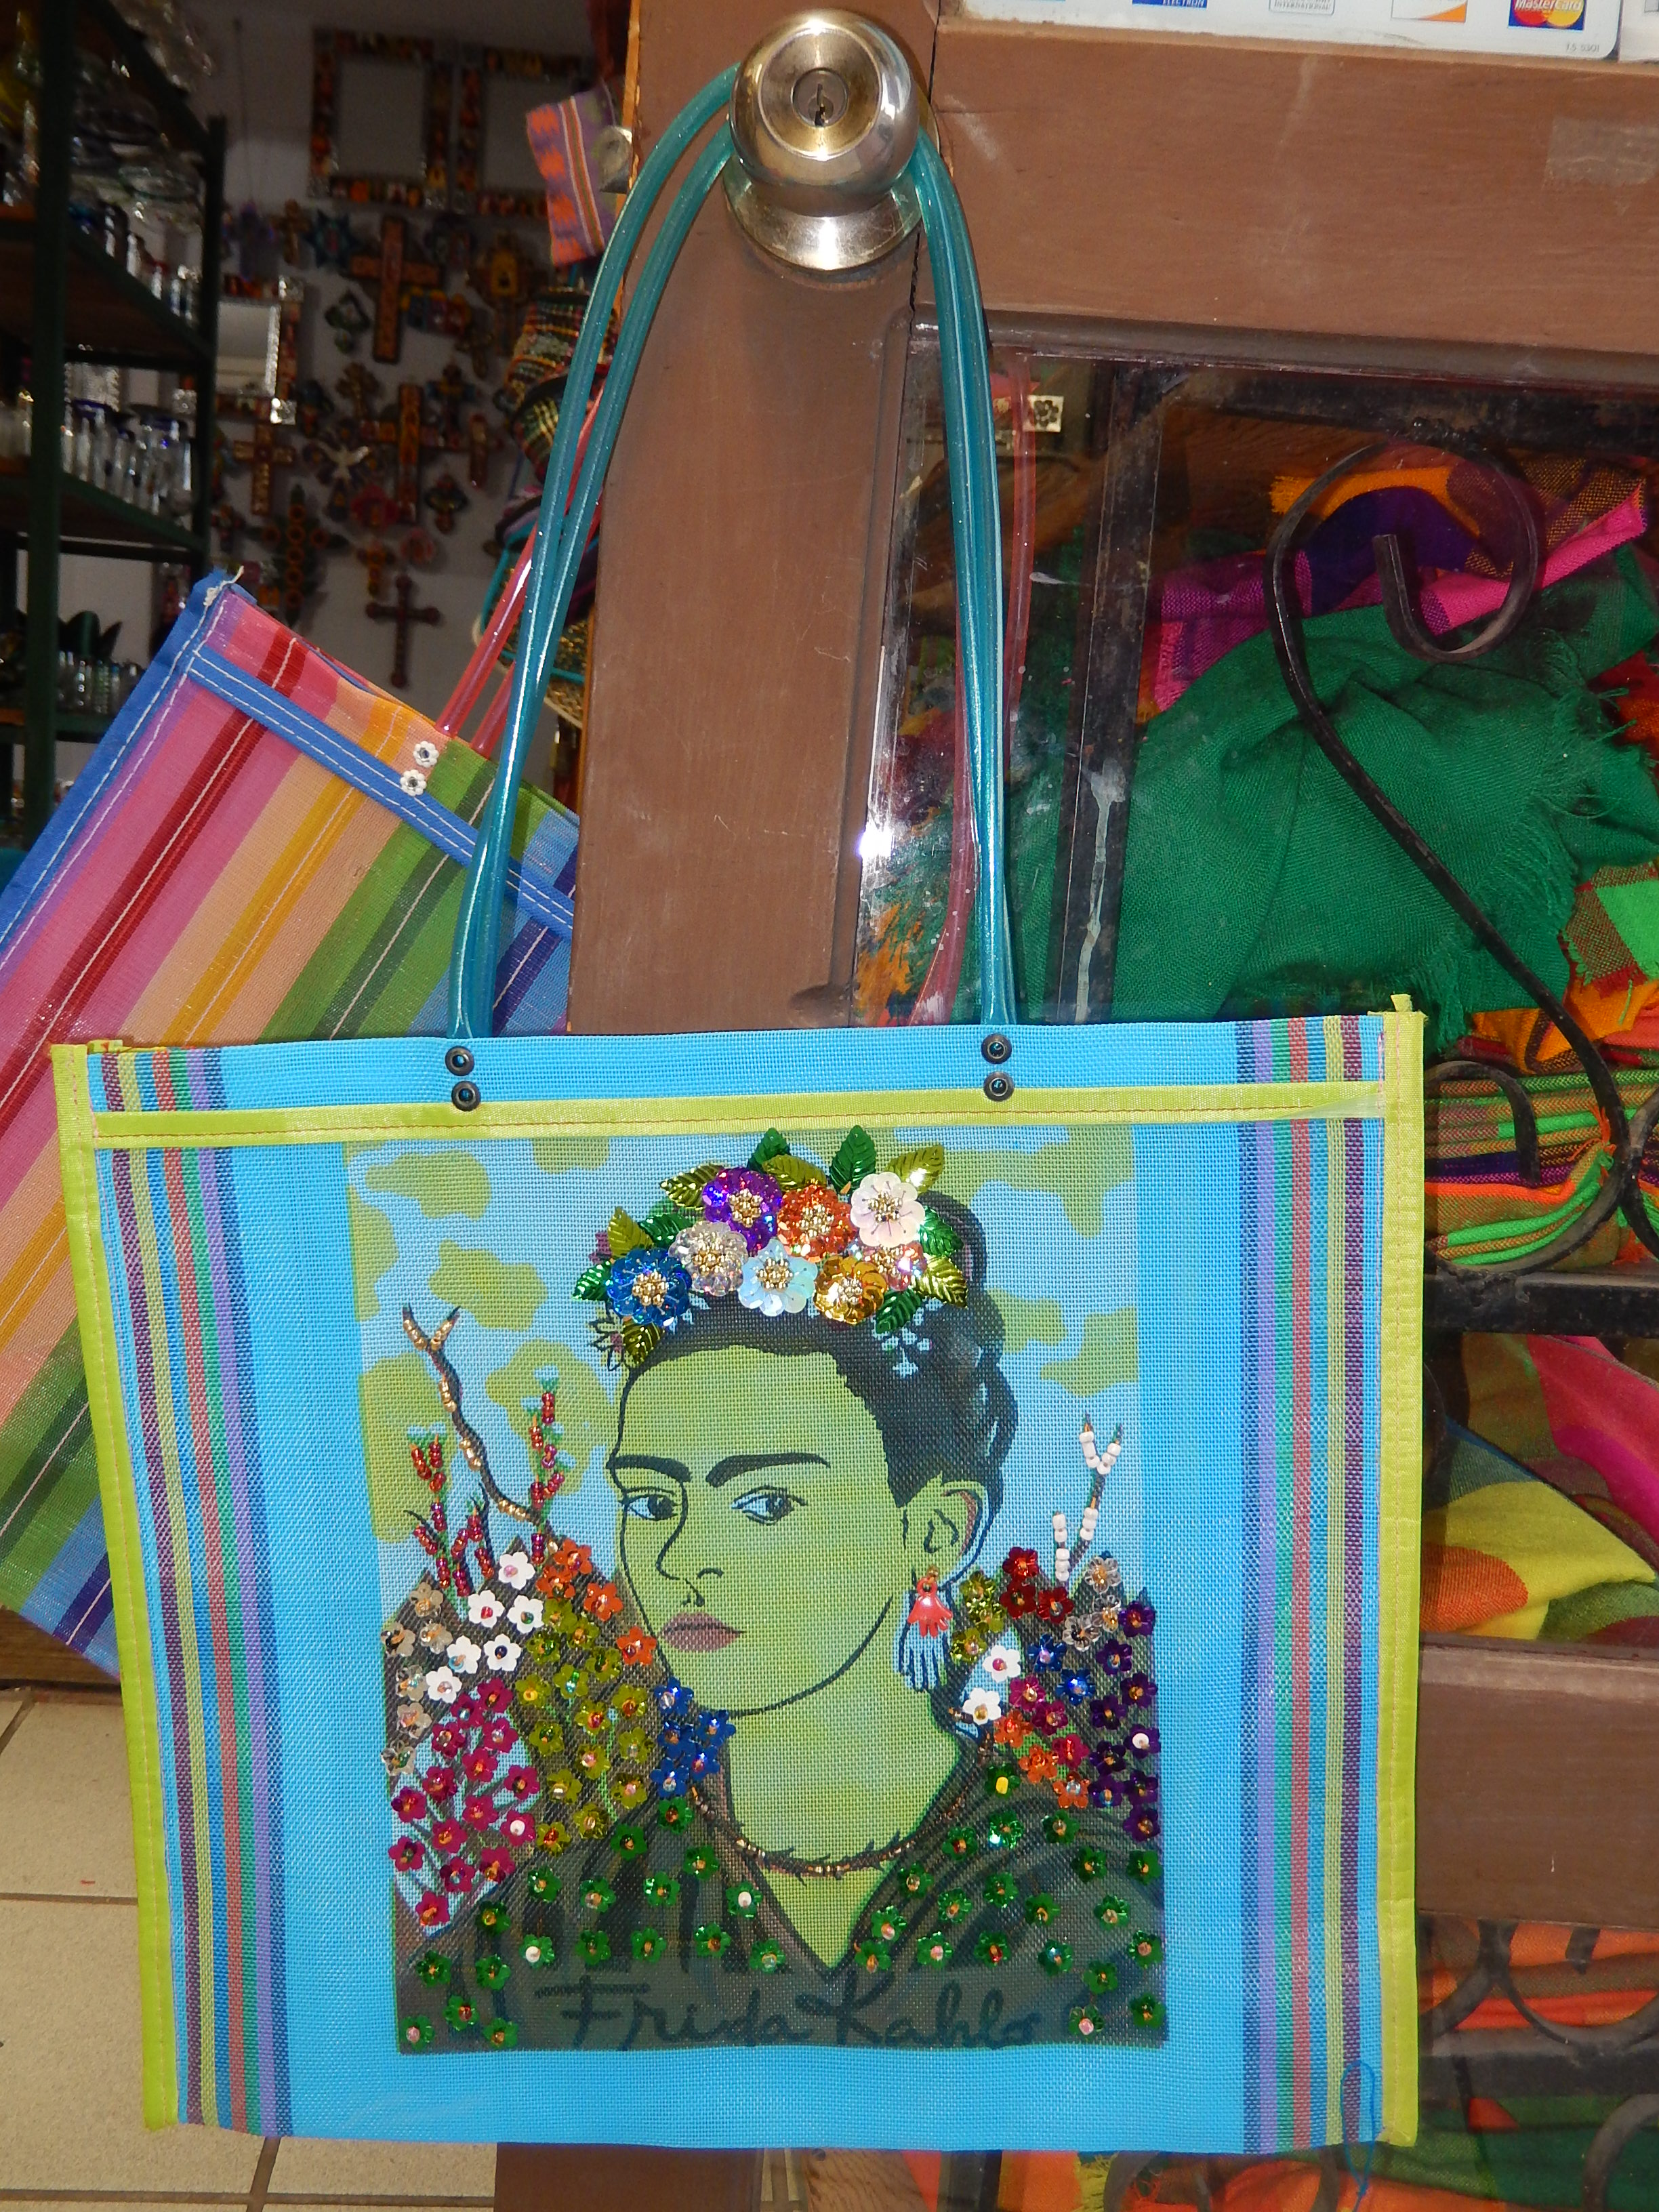 Frida recycled bag with decoration